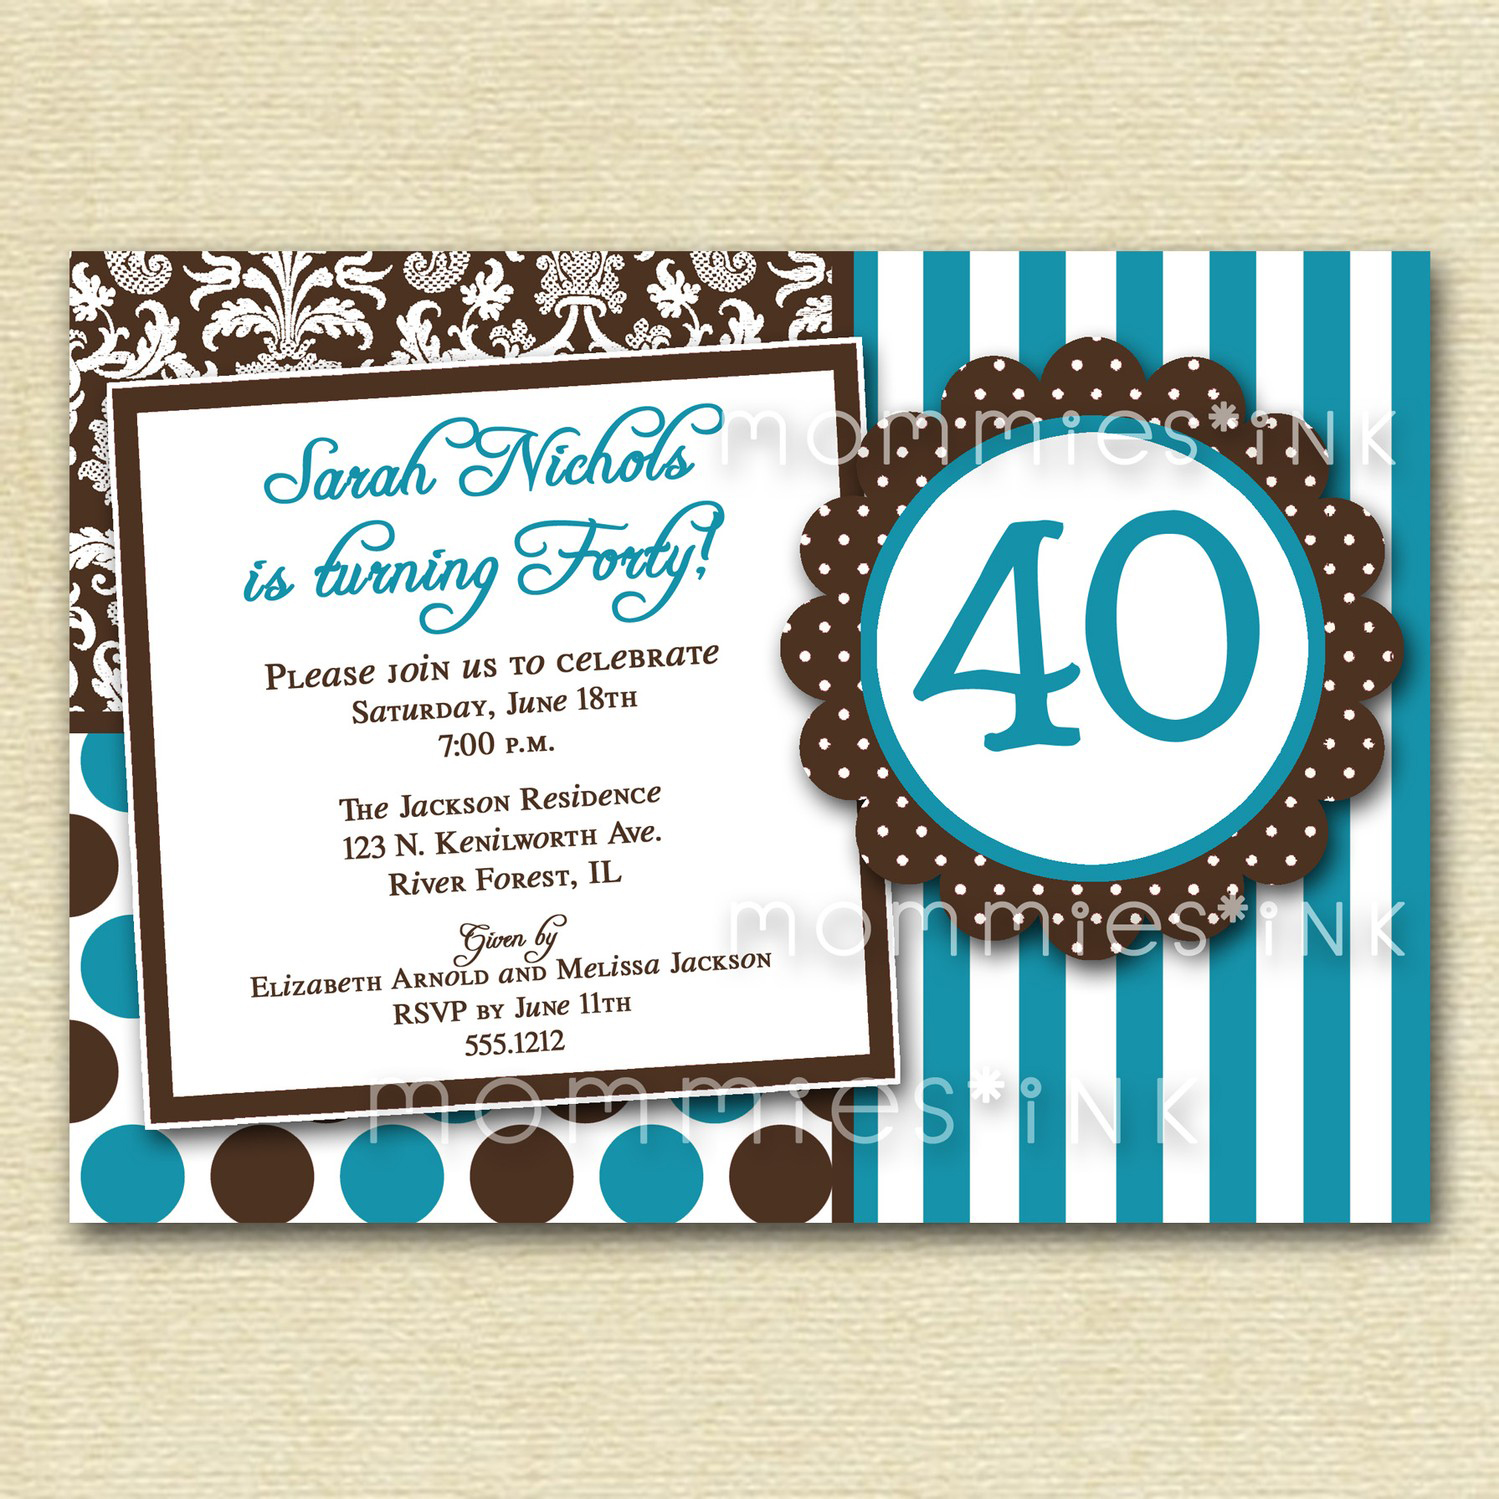 free 40th birthday invitation templates printable ; Impressive-Free-Printable-40th-Birthday-Invite-Cards-with-Blue-and-Black-Fonts-Colors-and-Striped-Colors